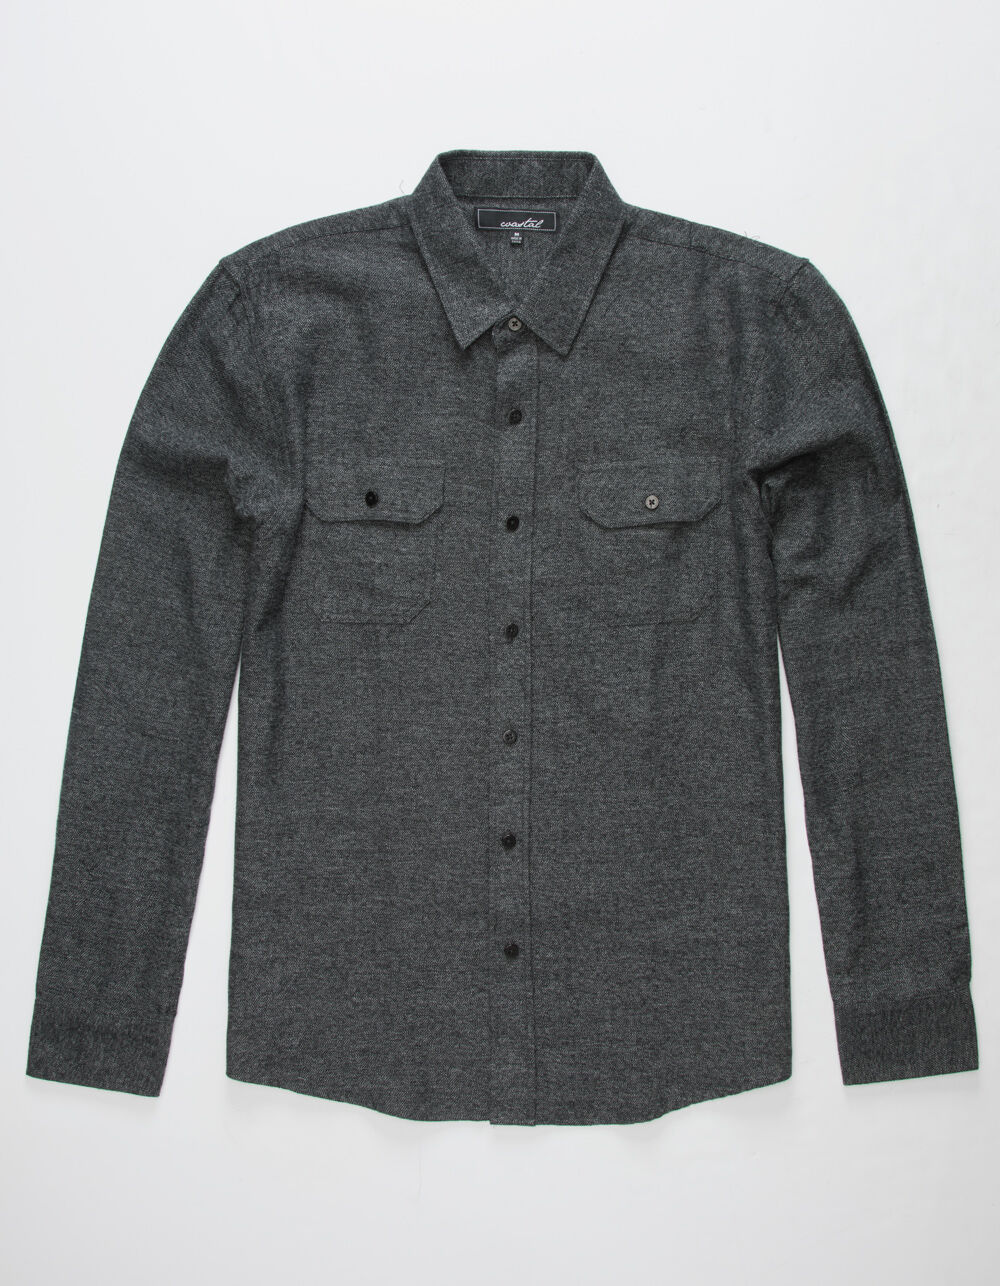 Image of COASTAL ECLIPSE FLANNEL SHIRT